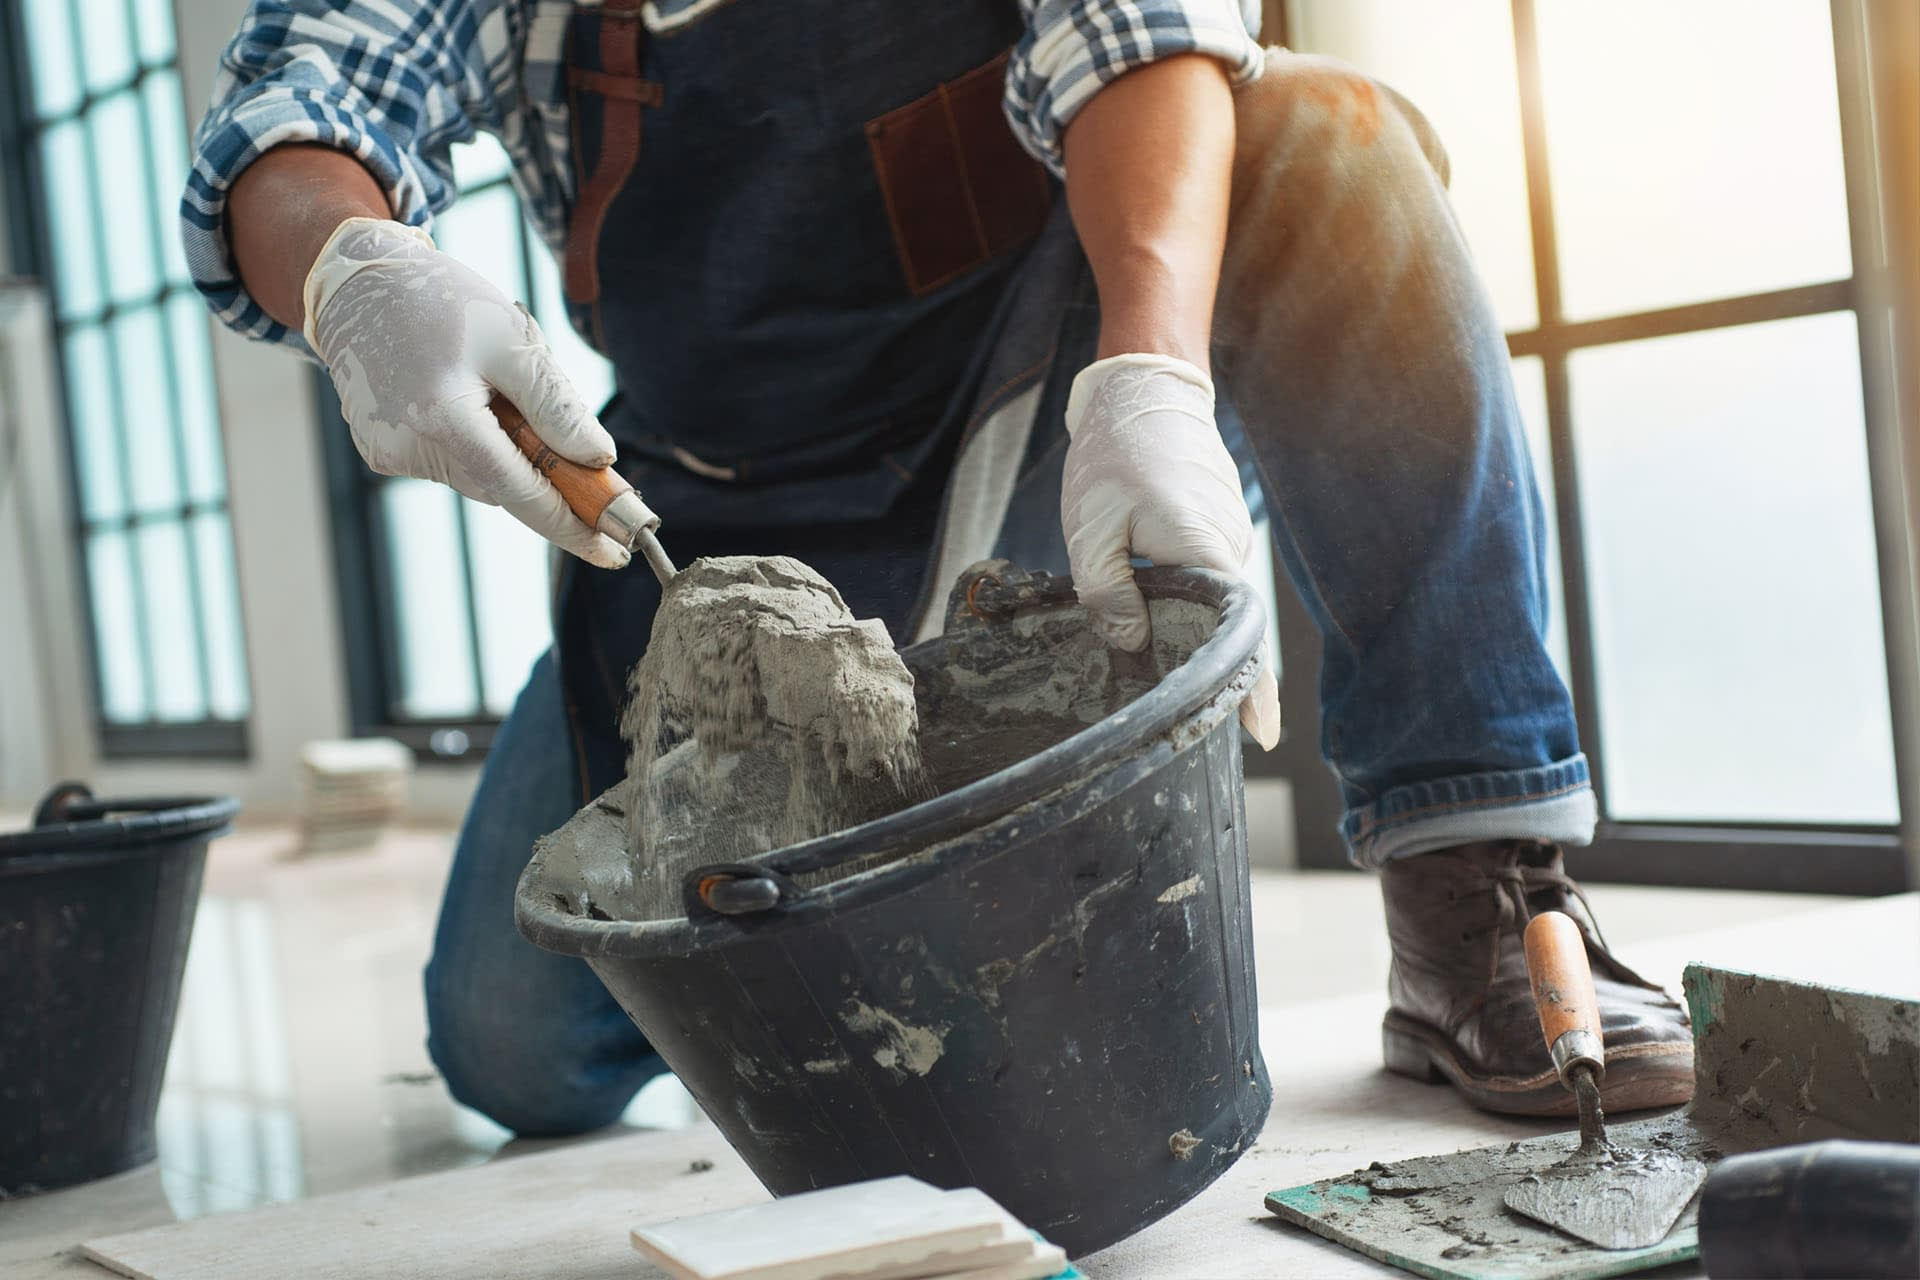 cement-ready-to-mix-mortar-tub-building-materials